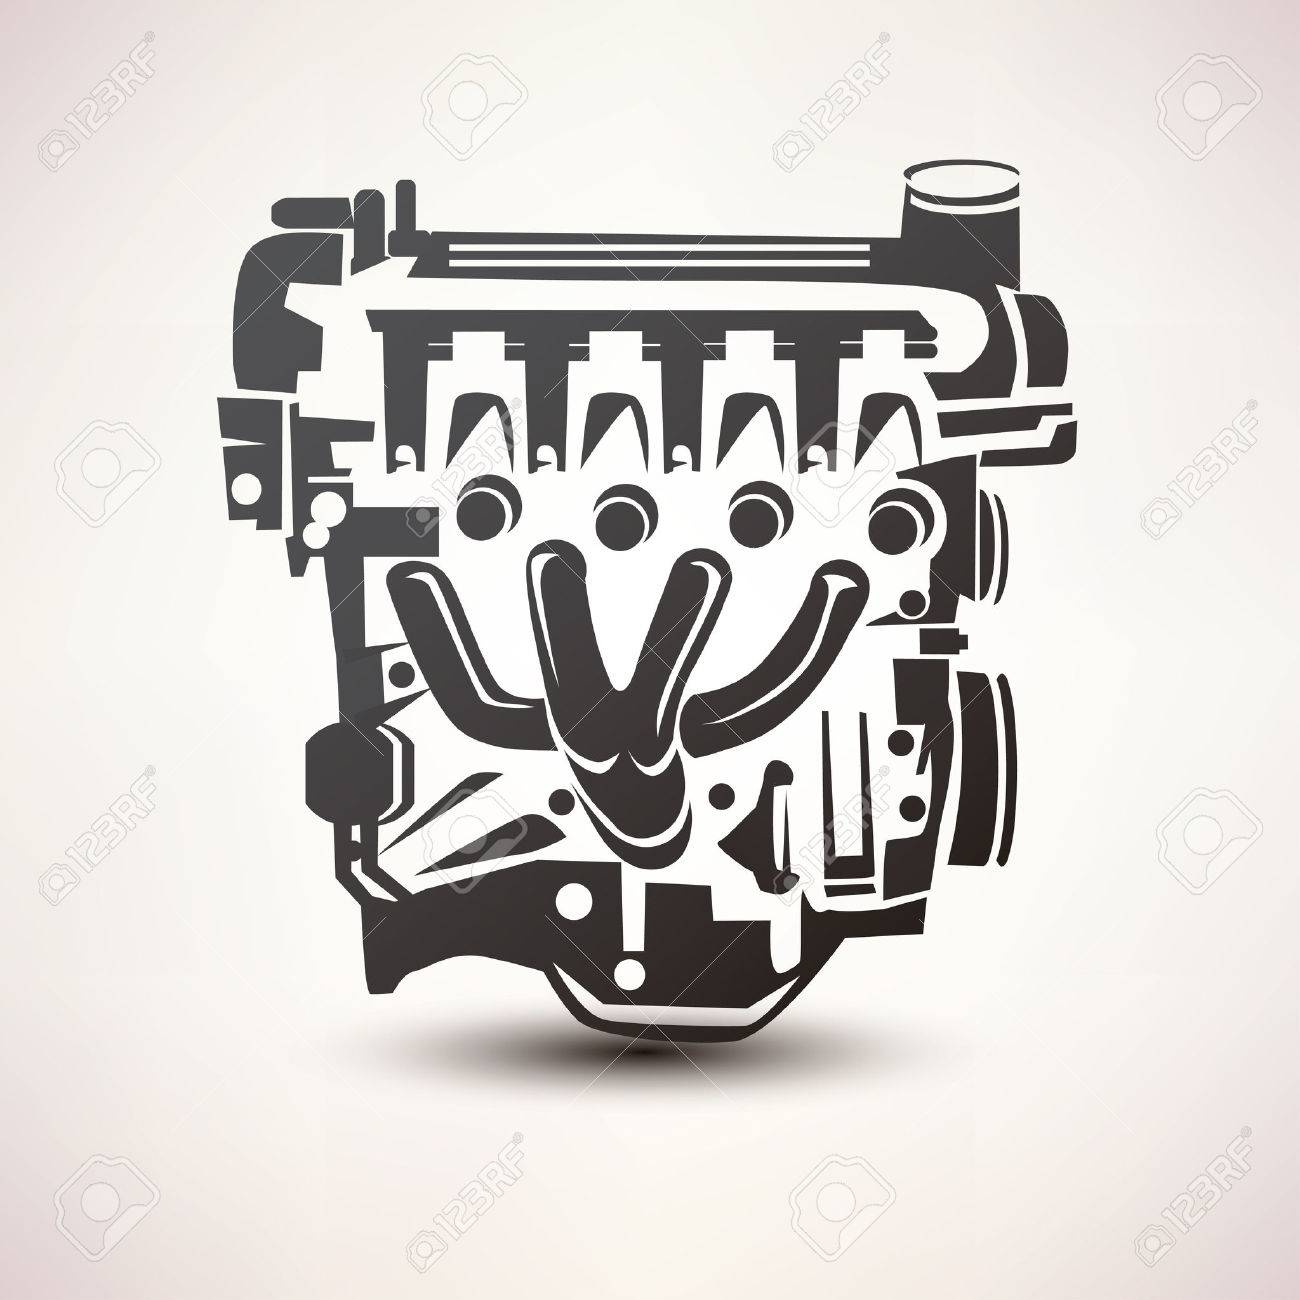 3355 check engine stock illustrations cliparts and royalty free engine car symbol stylized vector silhouette icon biocorpaavc Gallery